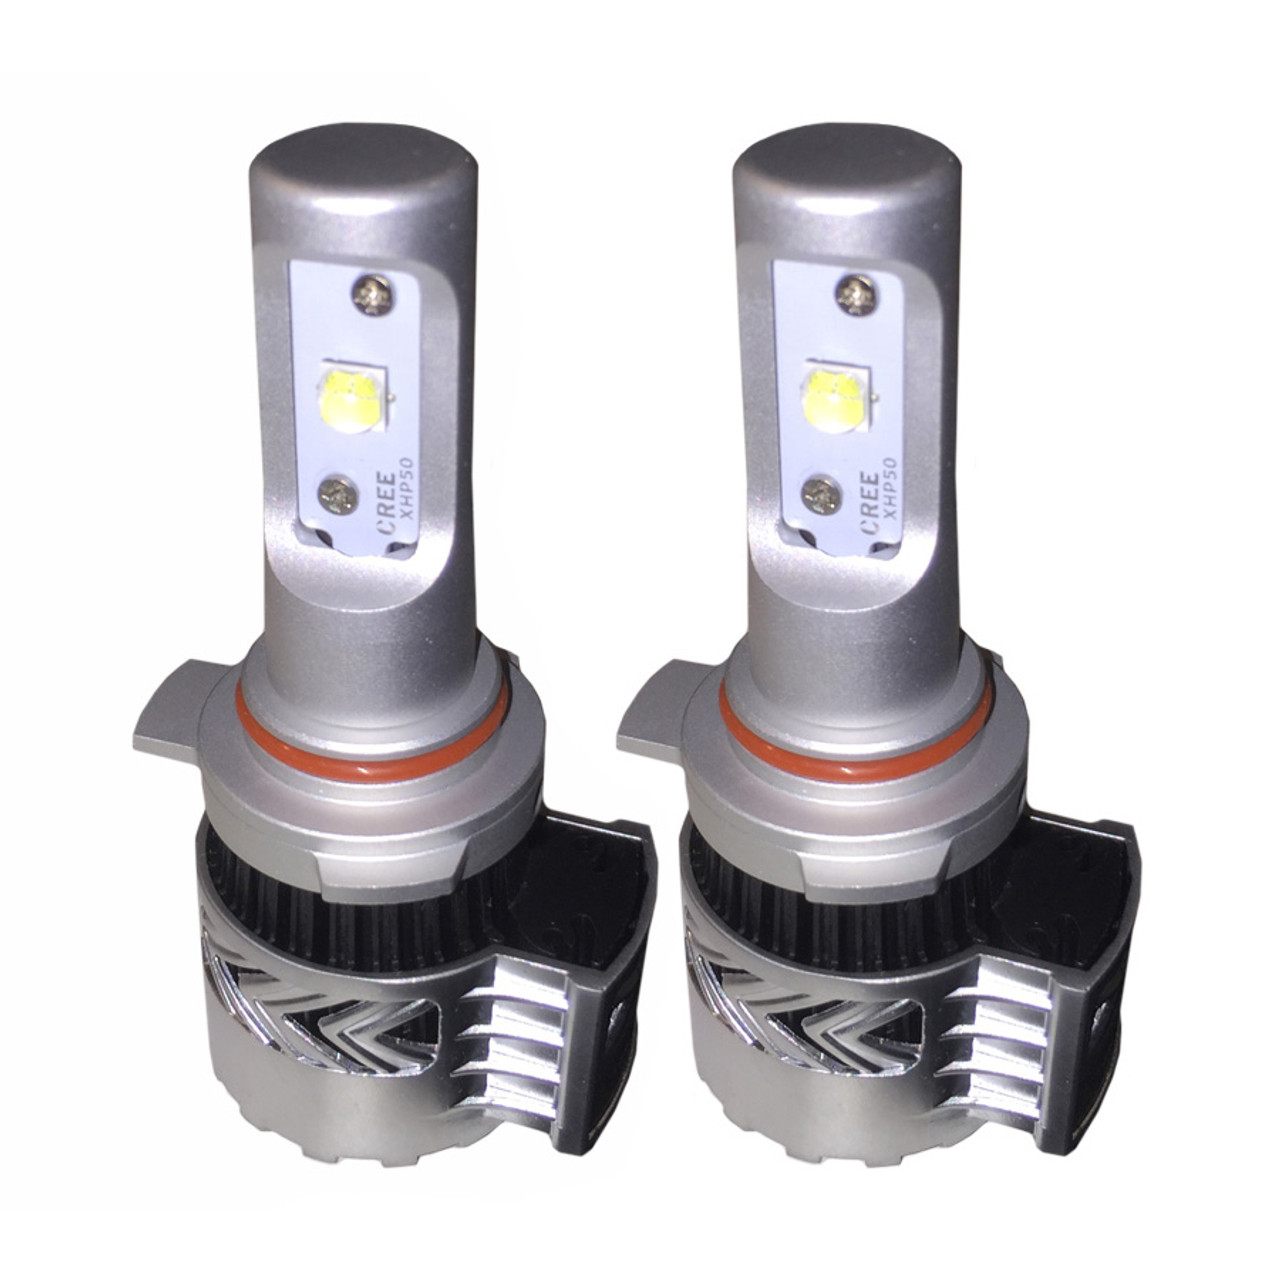 9012 (HIR2) 8G v 2 12000lm 72W CREE LED Headlight kit, cooling fan and  external LED driver, 6V DRL Compatible